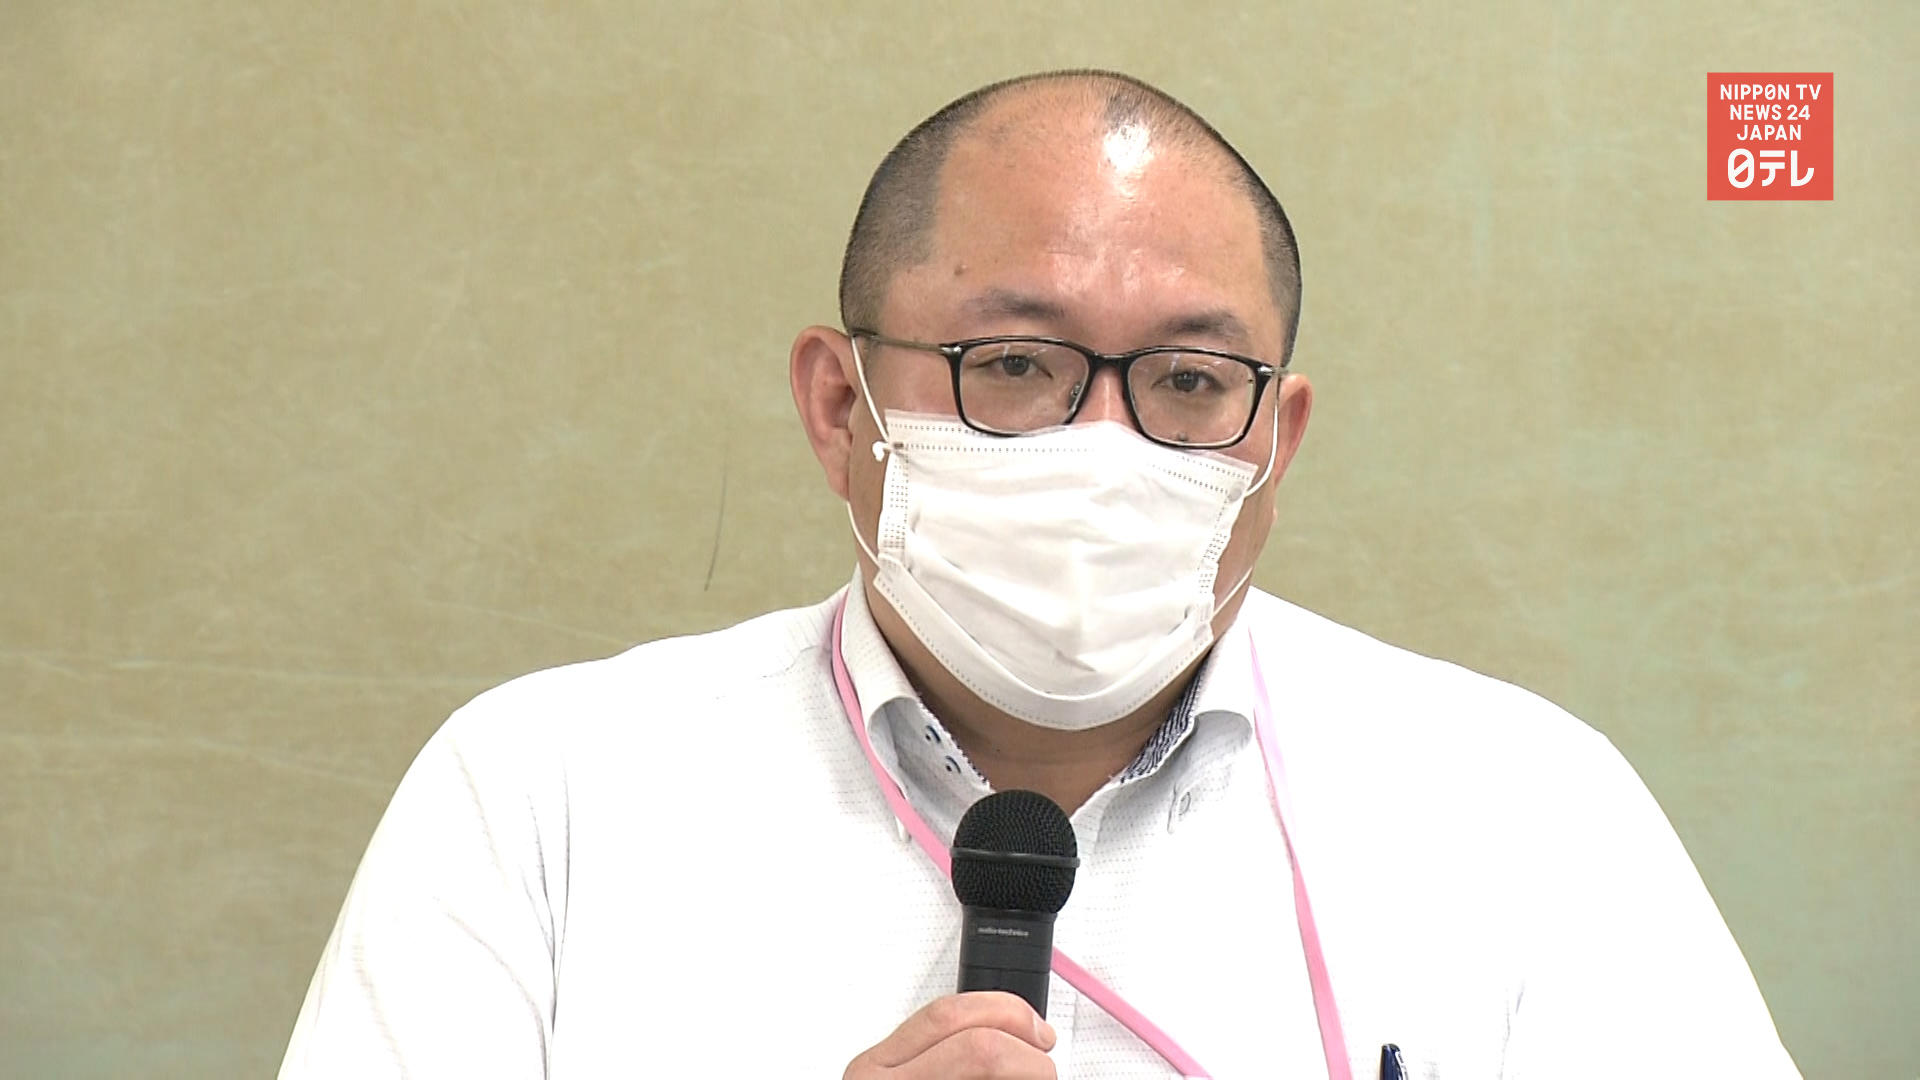 CORONAVIRUS: Japan could have 850,000 critically ill COVID 19 patients without measures: experts